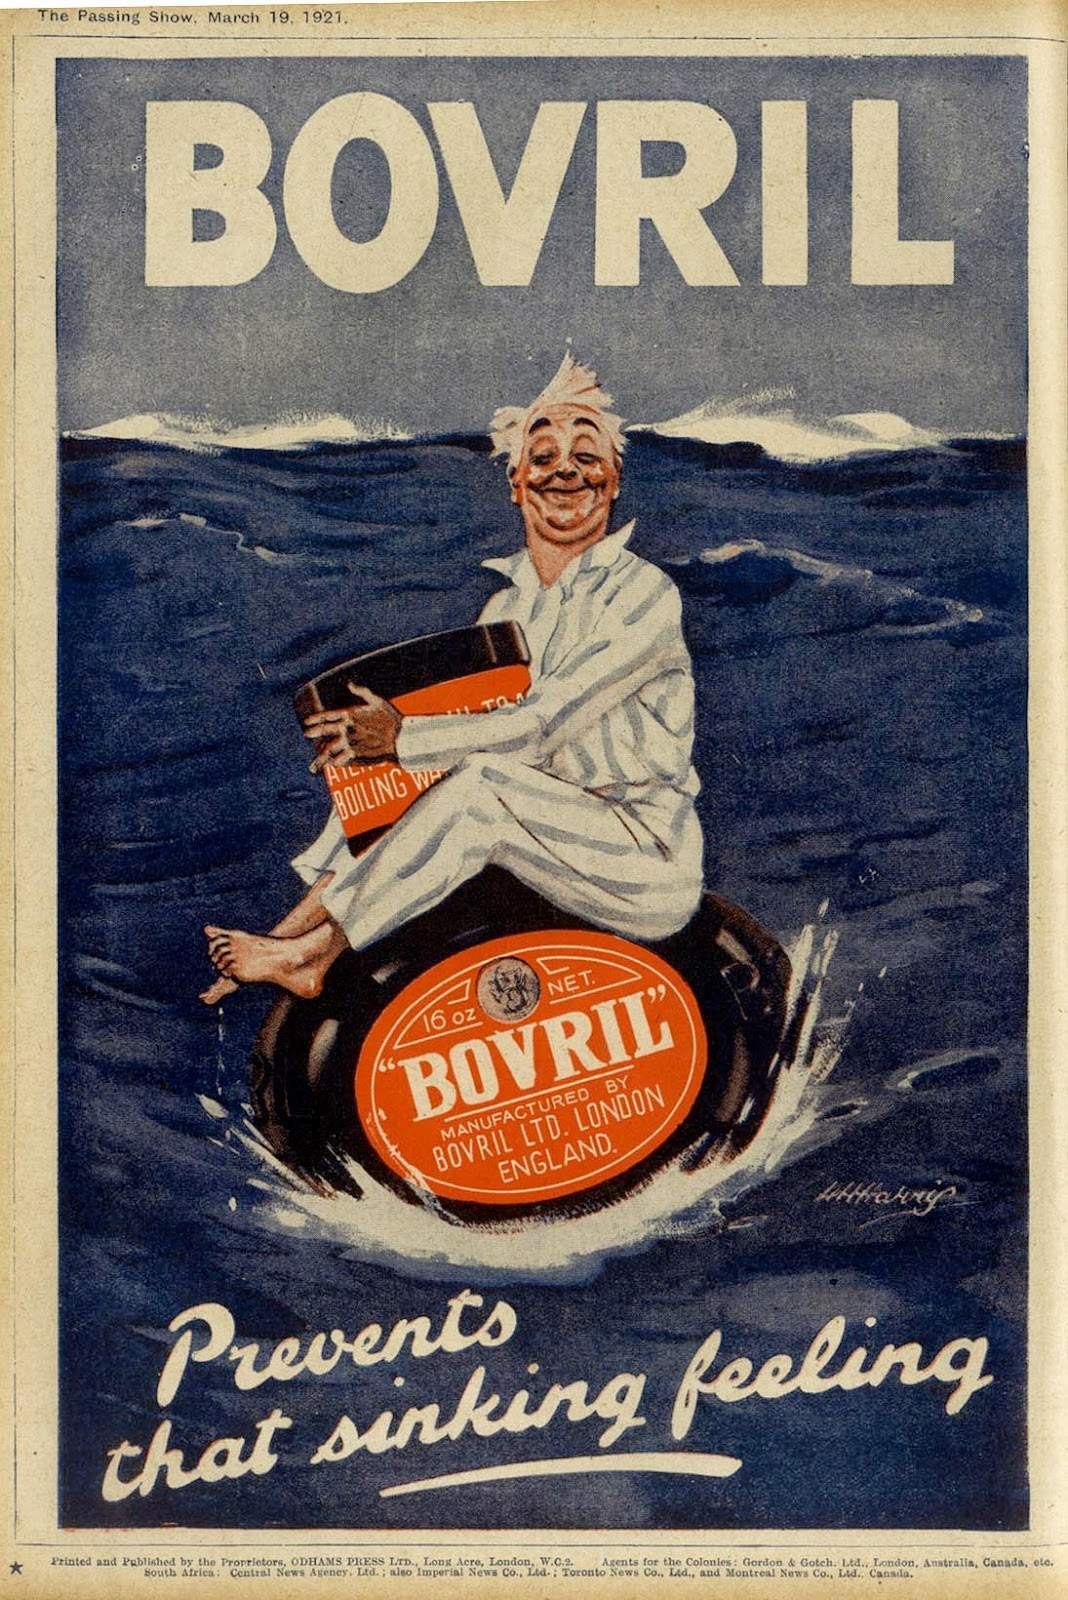 BOVRIL meat-extract prevents that sinking feeling